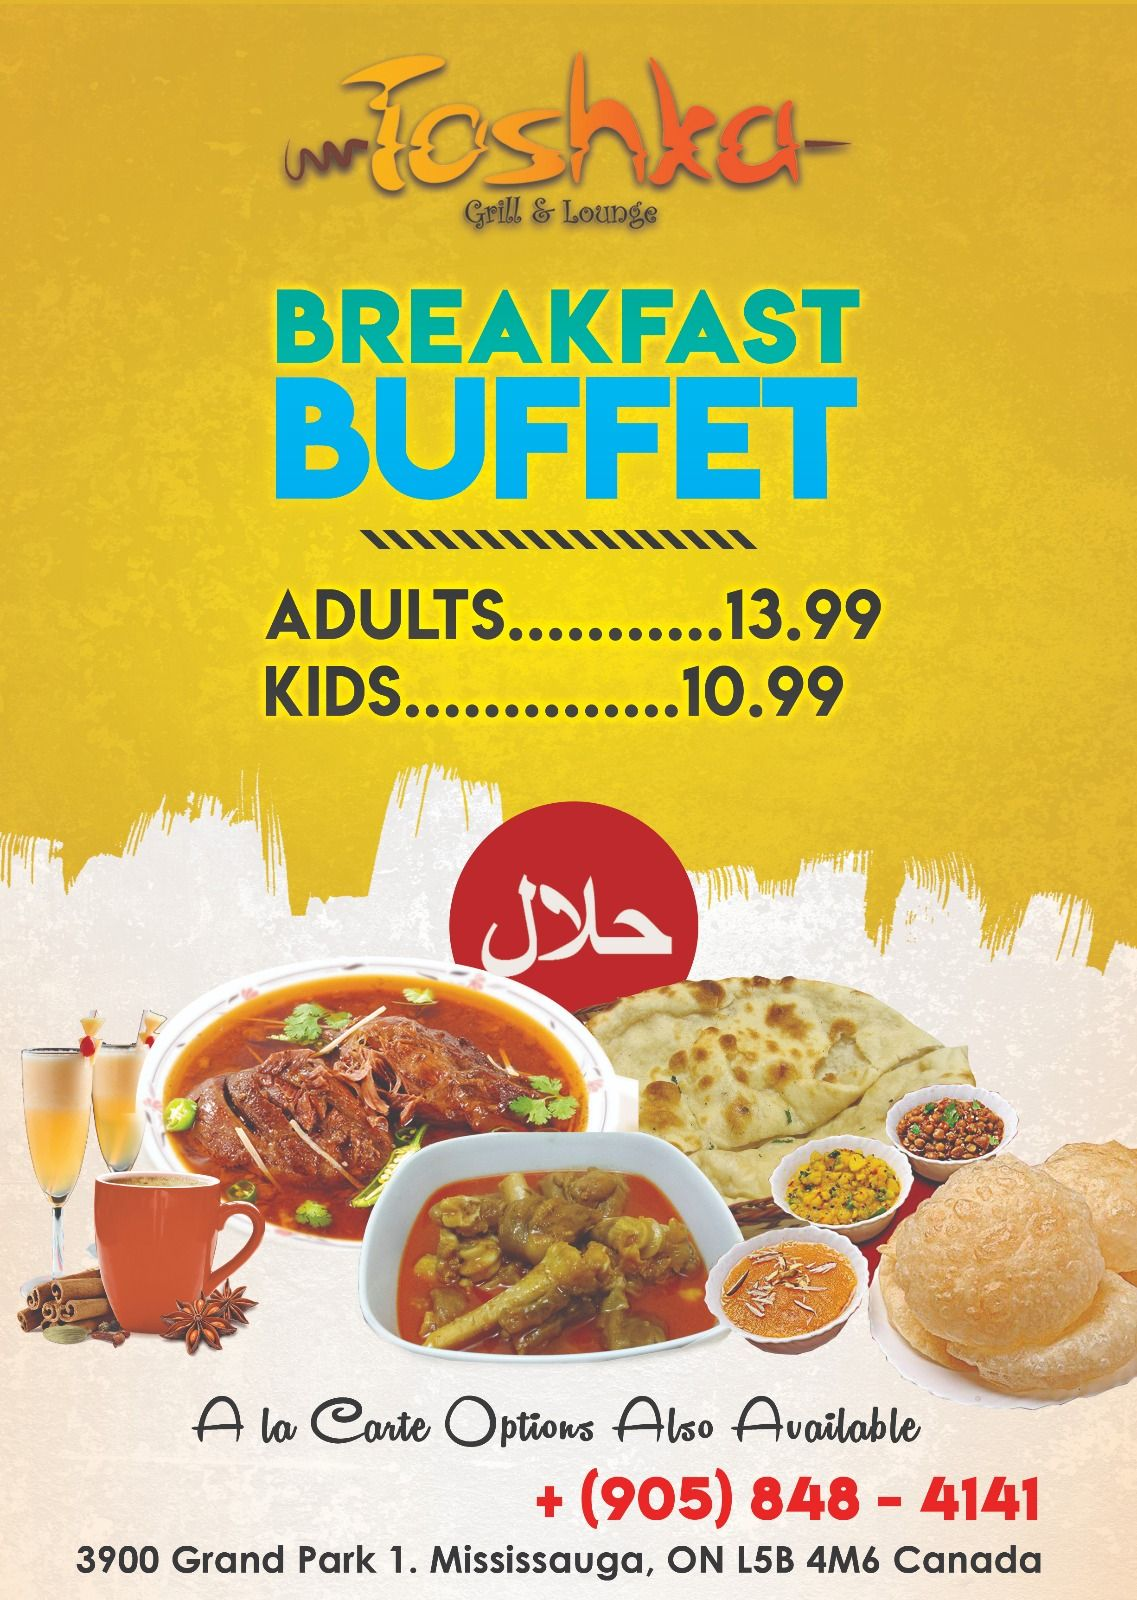 Fuel Up Your Day With The Best In Town Breakfast Buffet By Toshka Grill Lounge Enjoy The Taste Of Yummy Desi Dishes Halal Recipes Breakfast Buffet Desi Food